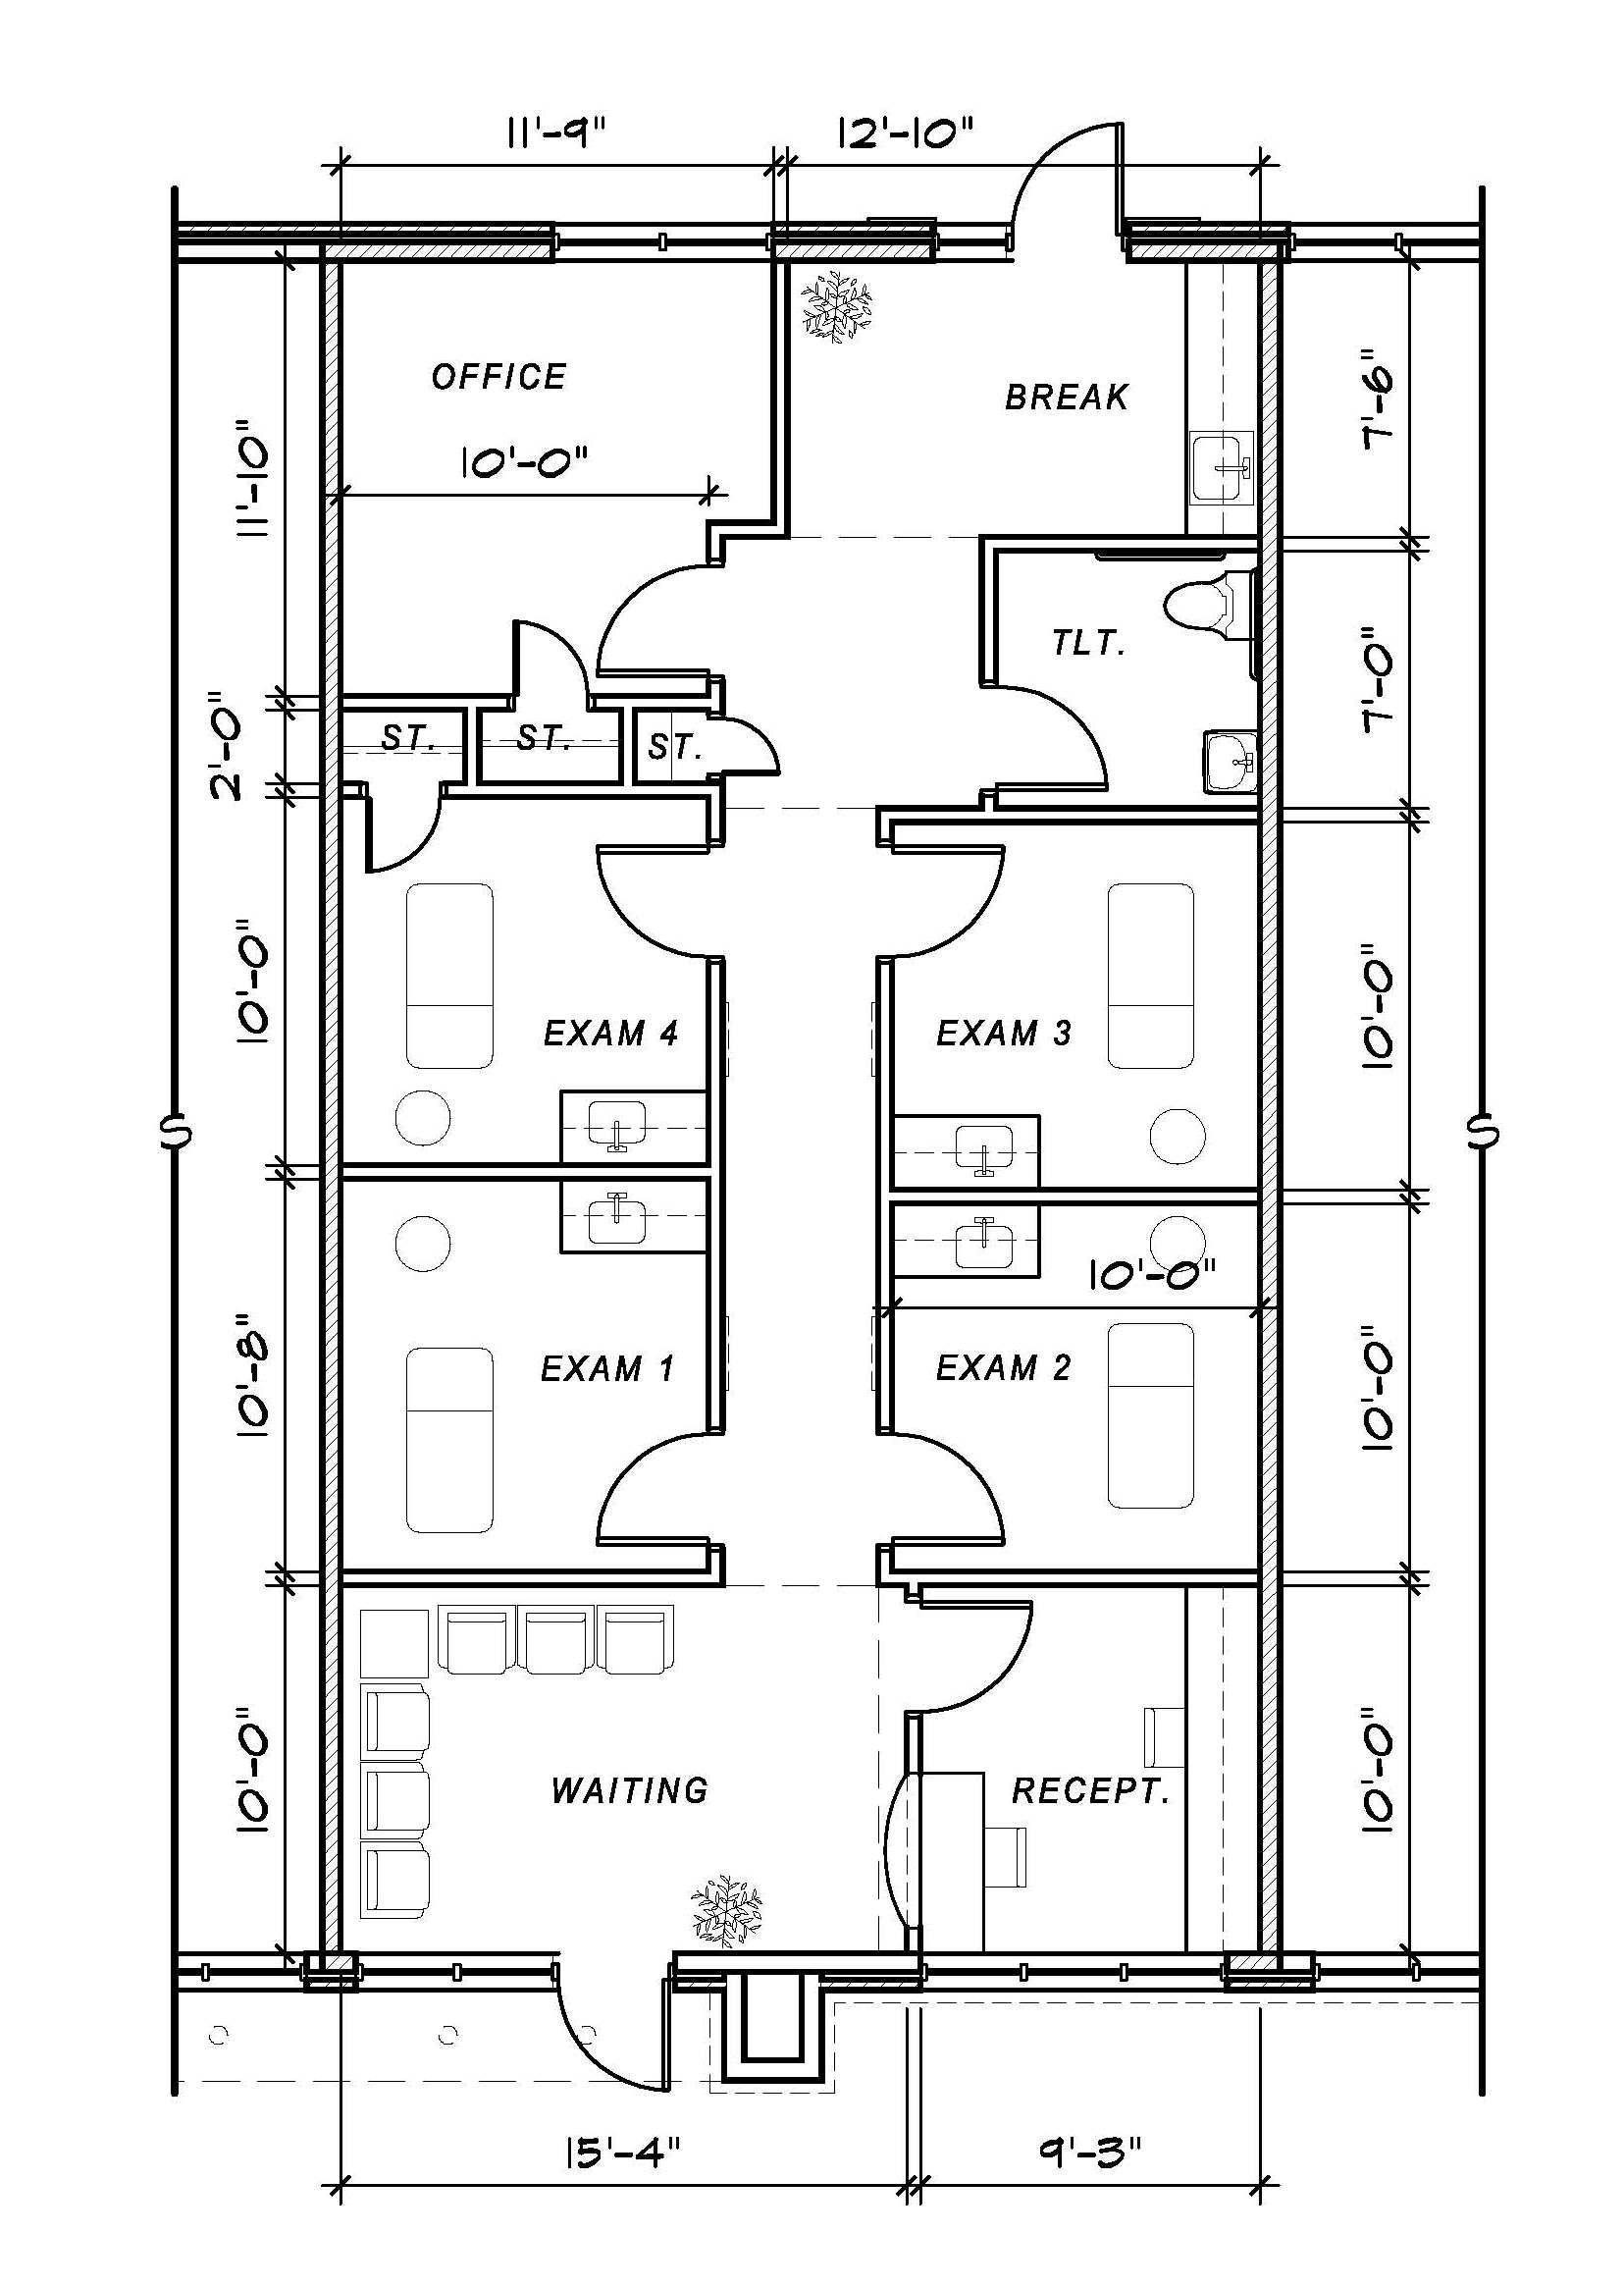 Endoscopy Room Layout Dimension: Medical Office Floor Plan Samples Decorating Inspiration